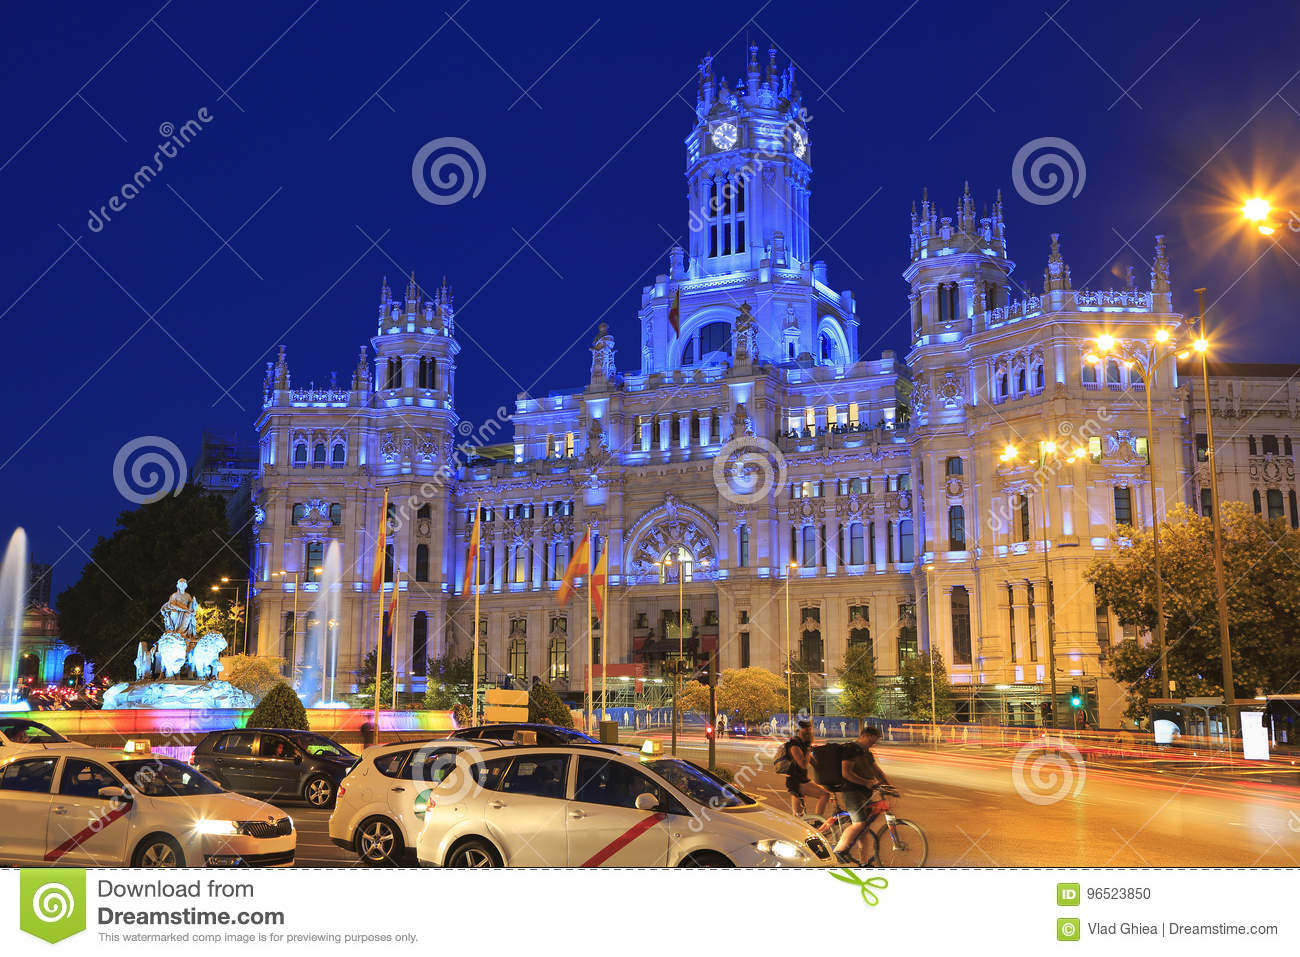 Cybele Palace and fountain illuminated at night in Madrid, Spain